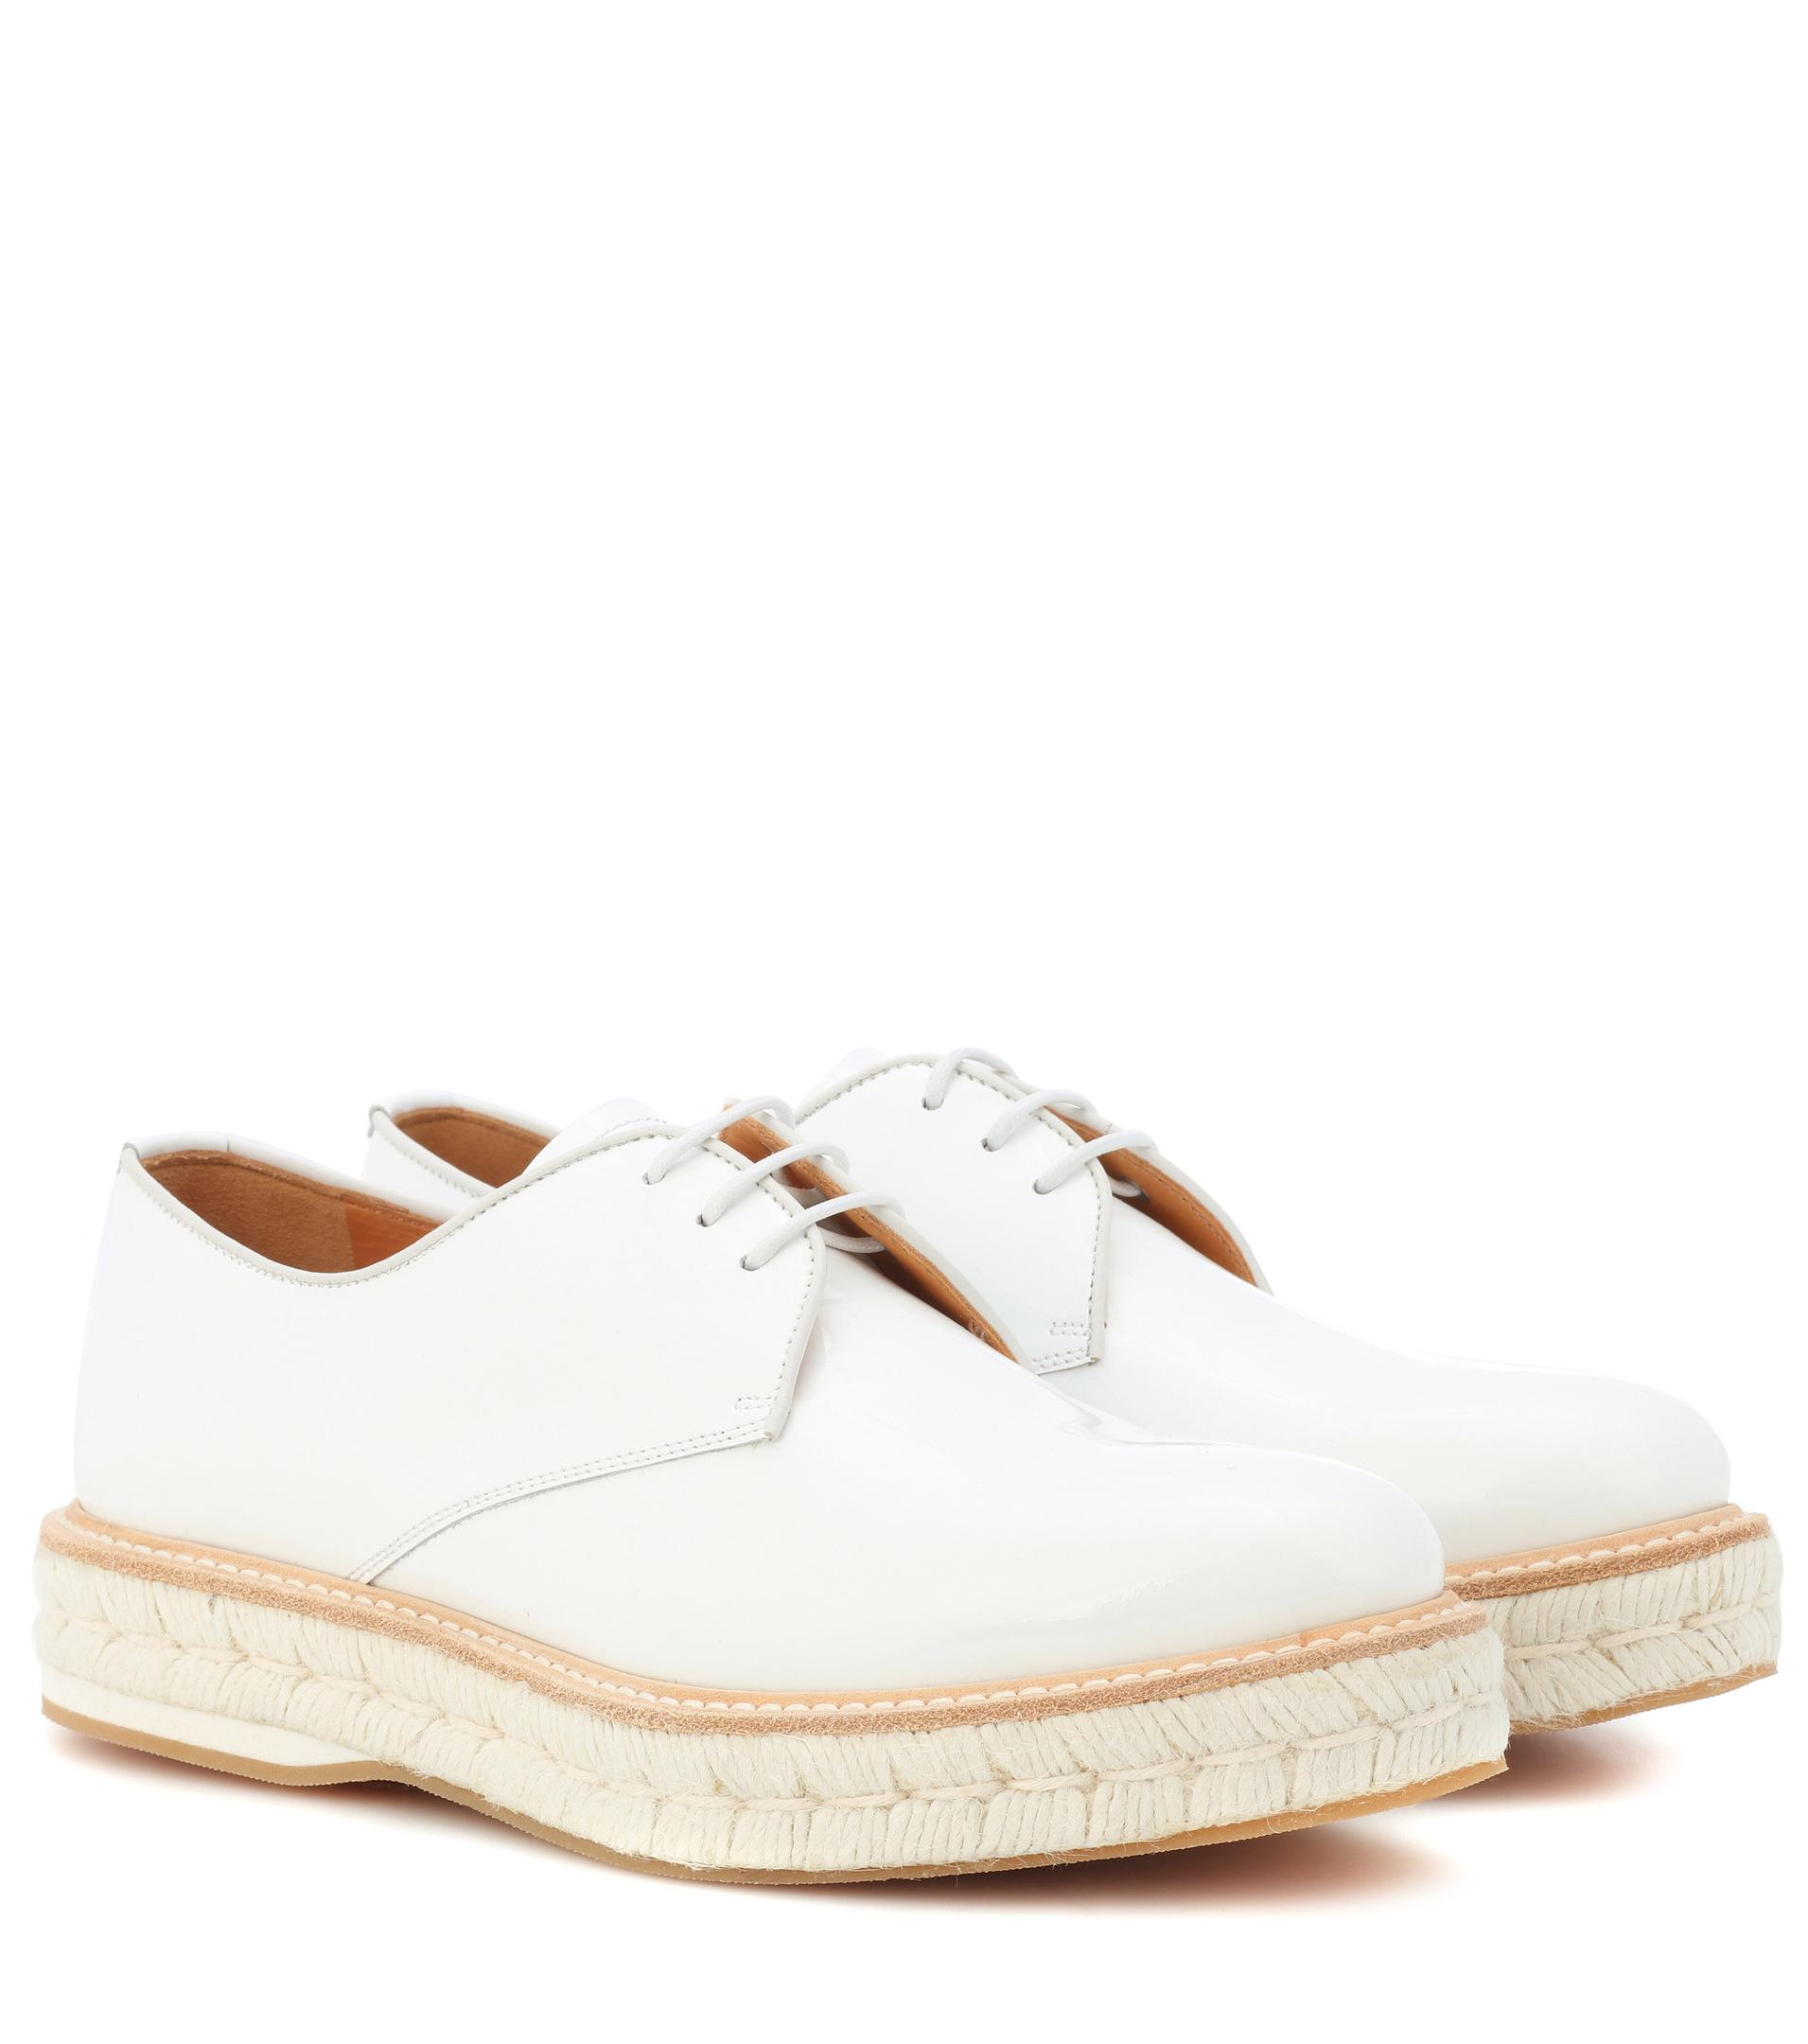 Church's Taylee suede lace-ups Great Deals Shop For Online New Arrival New Styles 2Q3LKS5